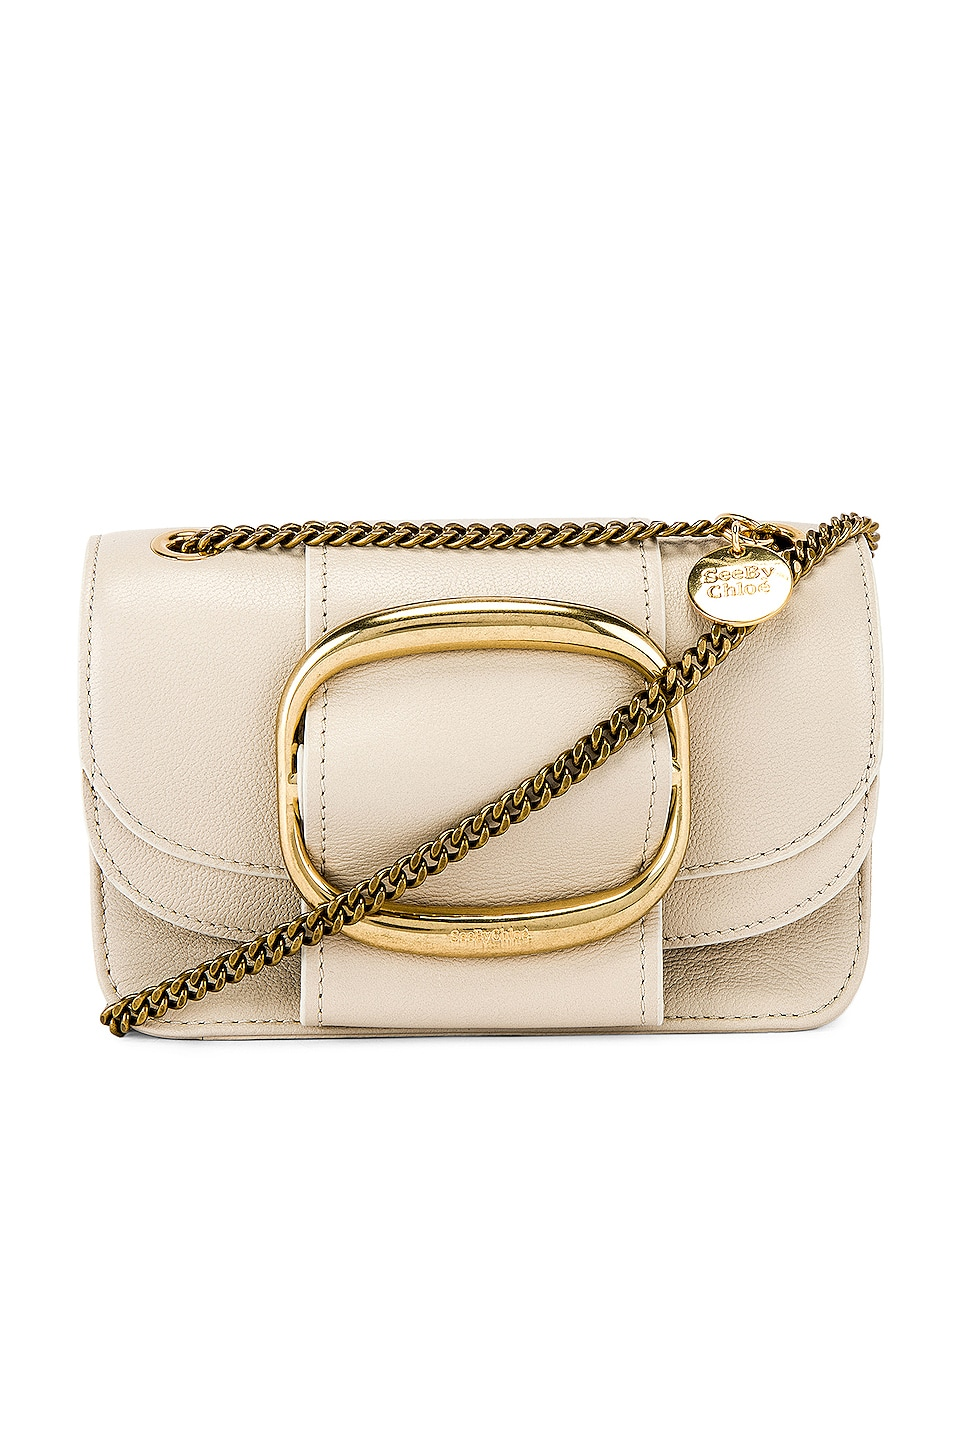 See By Chloe Hopper Small Crossbody in Cement Beige